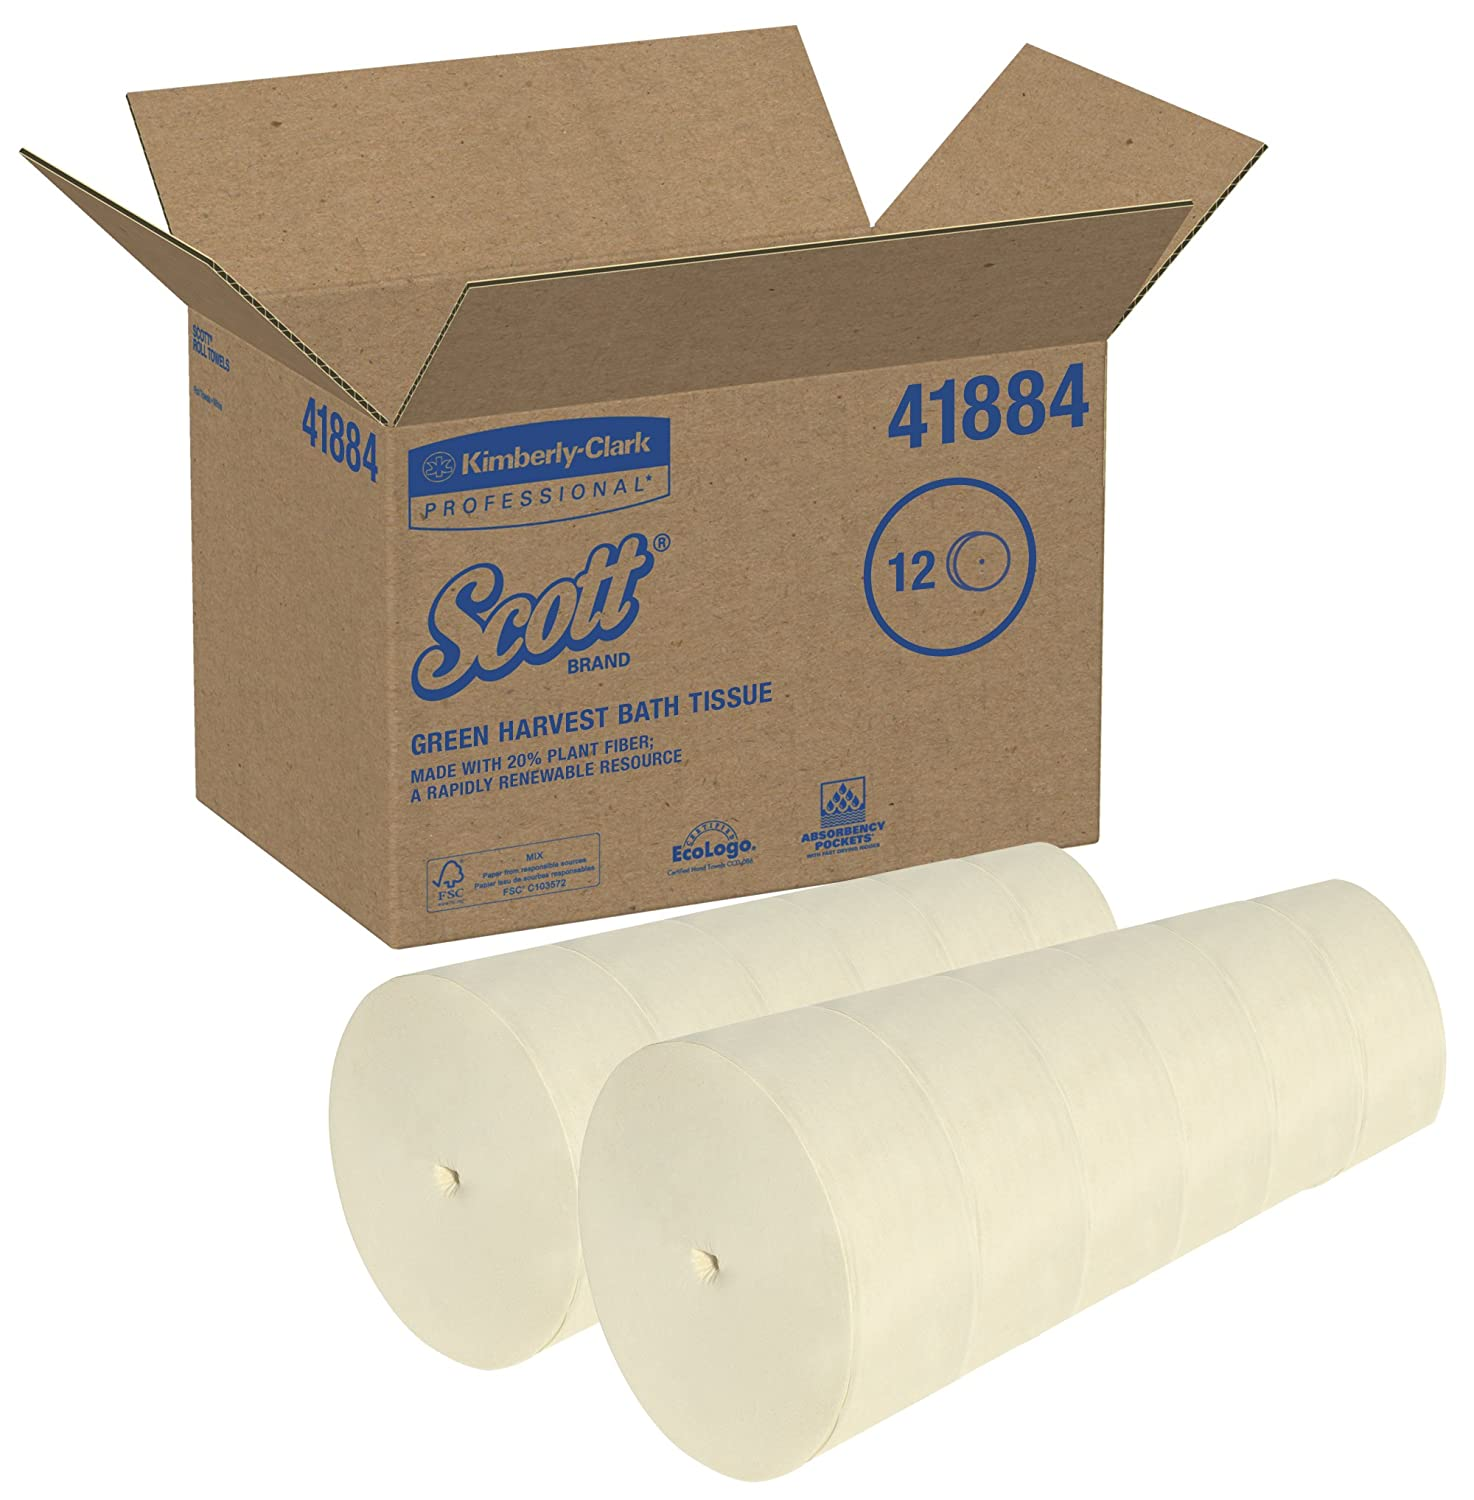 Amazon.com: Scott Coreless Jumbo Roll Toilet Paper (41884), with Rapidly Renewable Plant Fiber (Green Harvest), 2-Ply, Soft Wheat Color, 12 Rolls/Case, ...